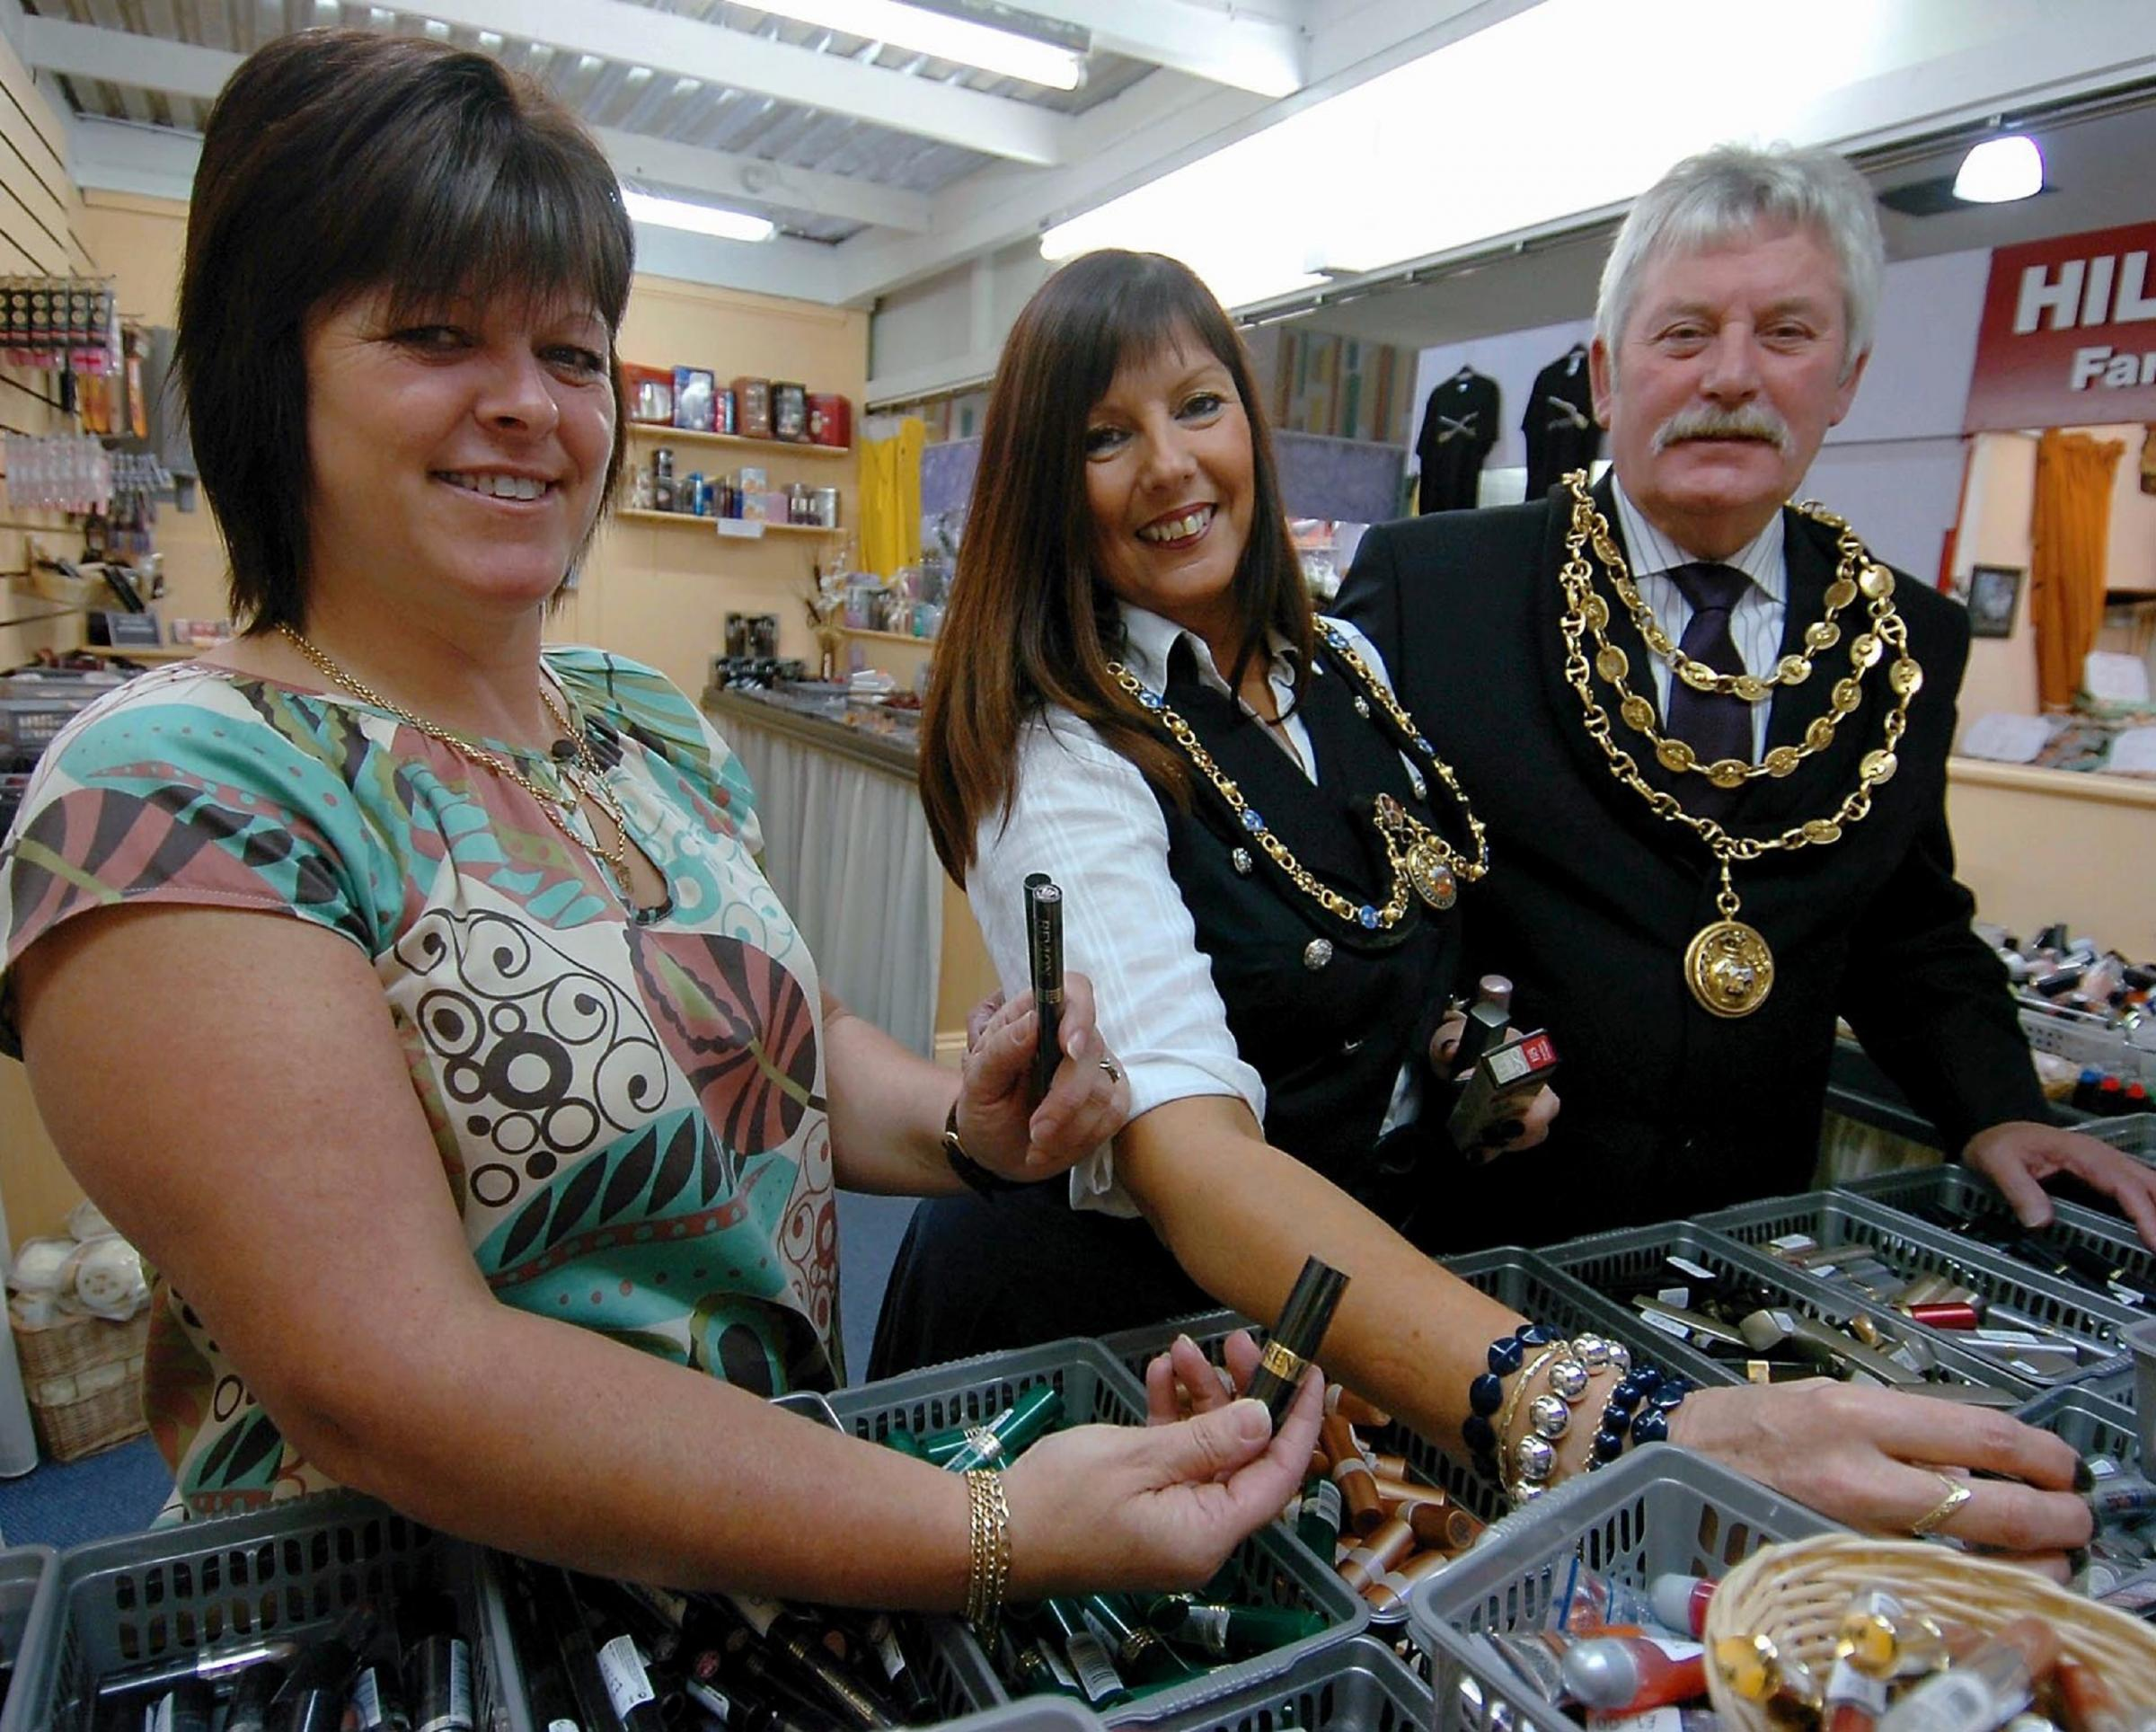 New: Market trader Beverley Benson at her  Barrow Lips and Lashes stall in 2008 with Dave Roberts and Pauline Coates